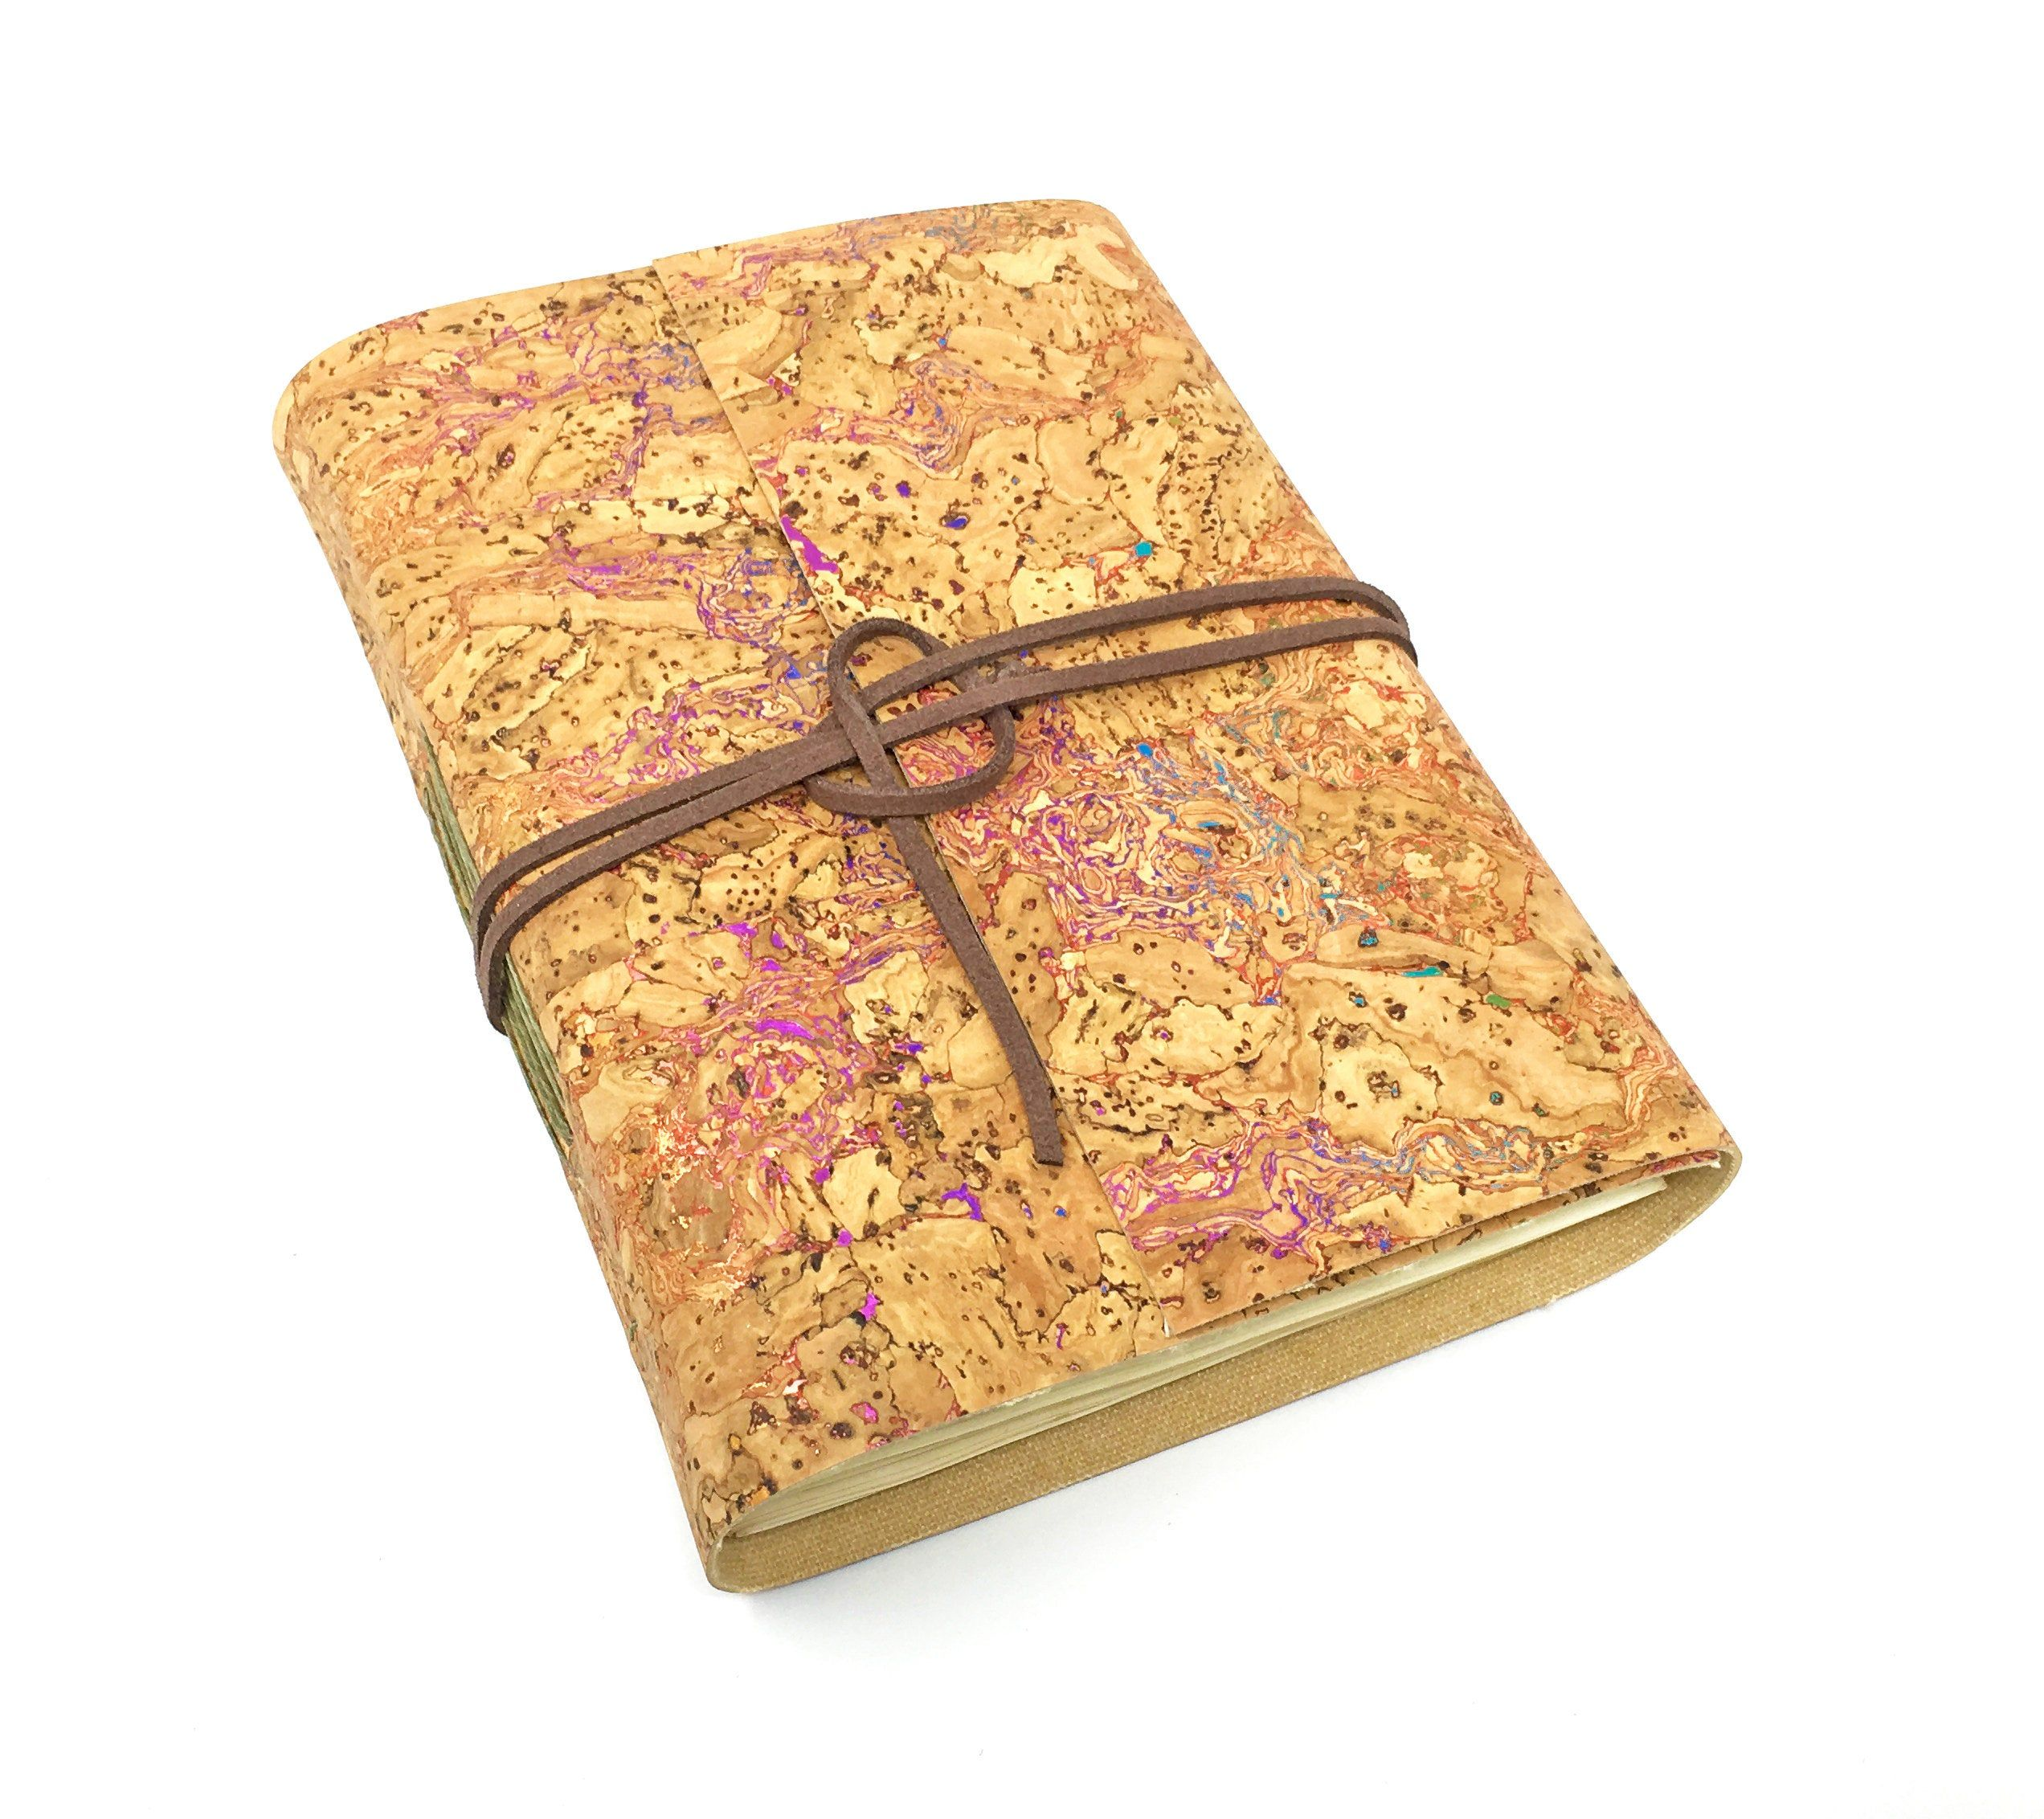 Vegan Cork Handbound Journal With Tea Stained Pages